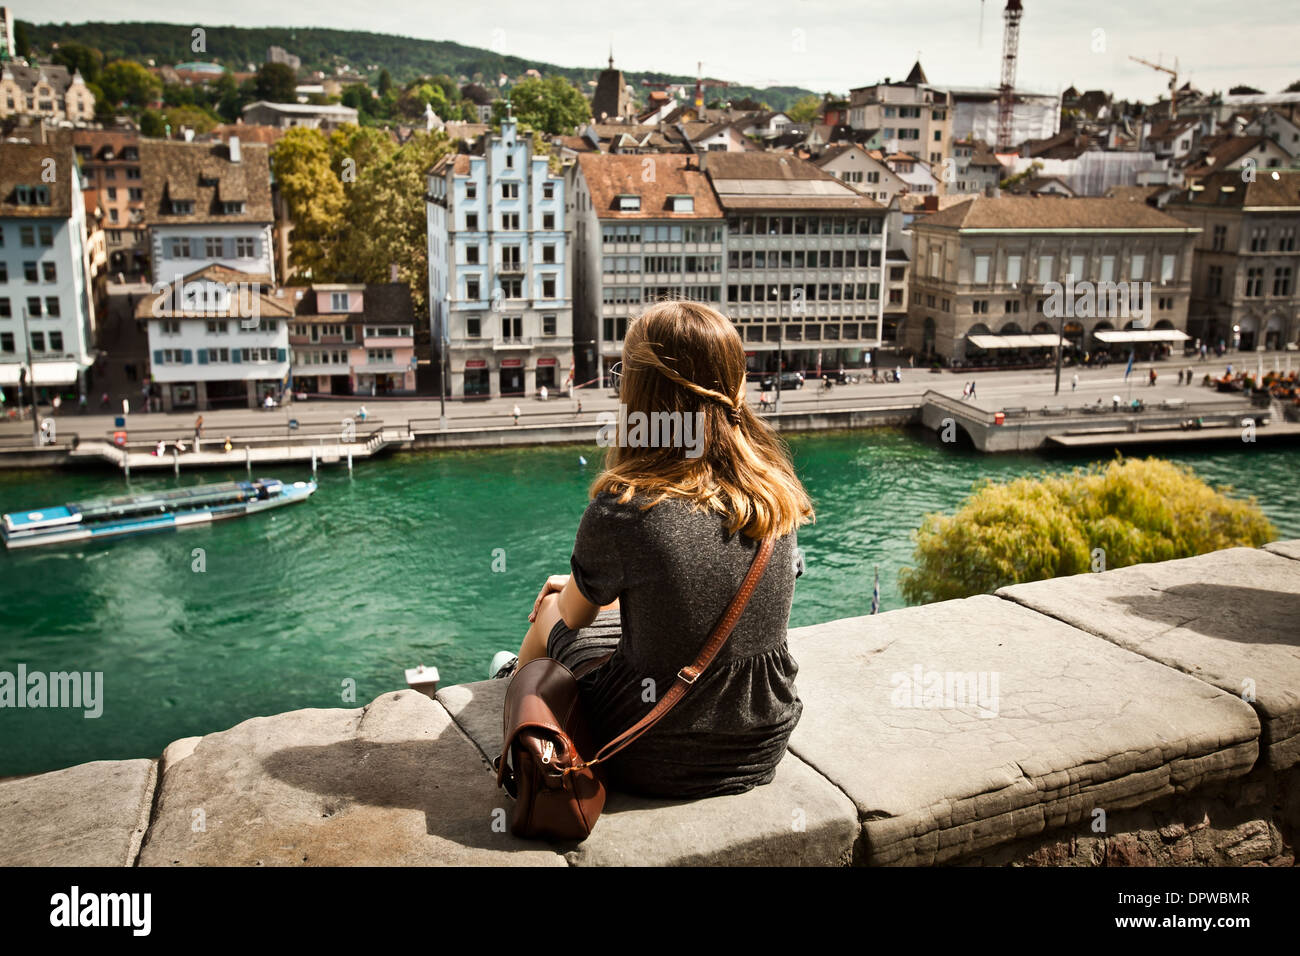 A young woman sightseeing beautiful view of Zurich, Switzerland - Stock Image